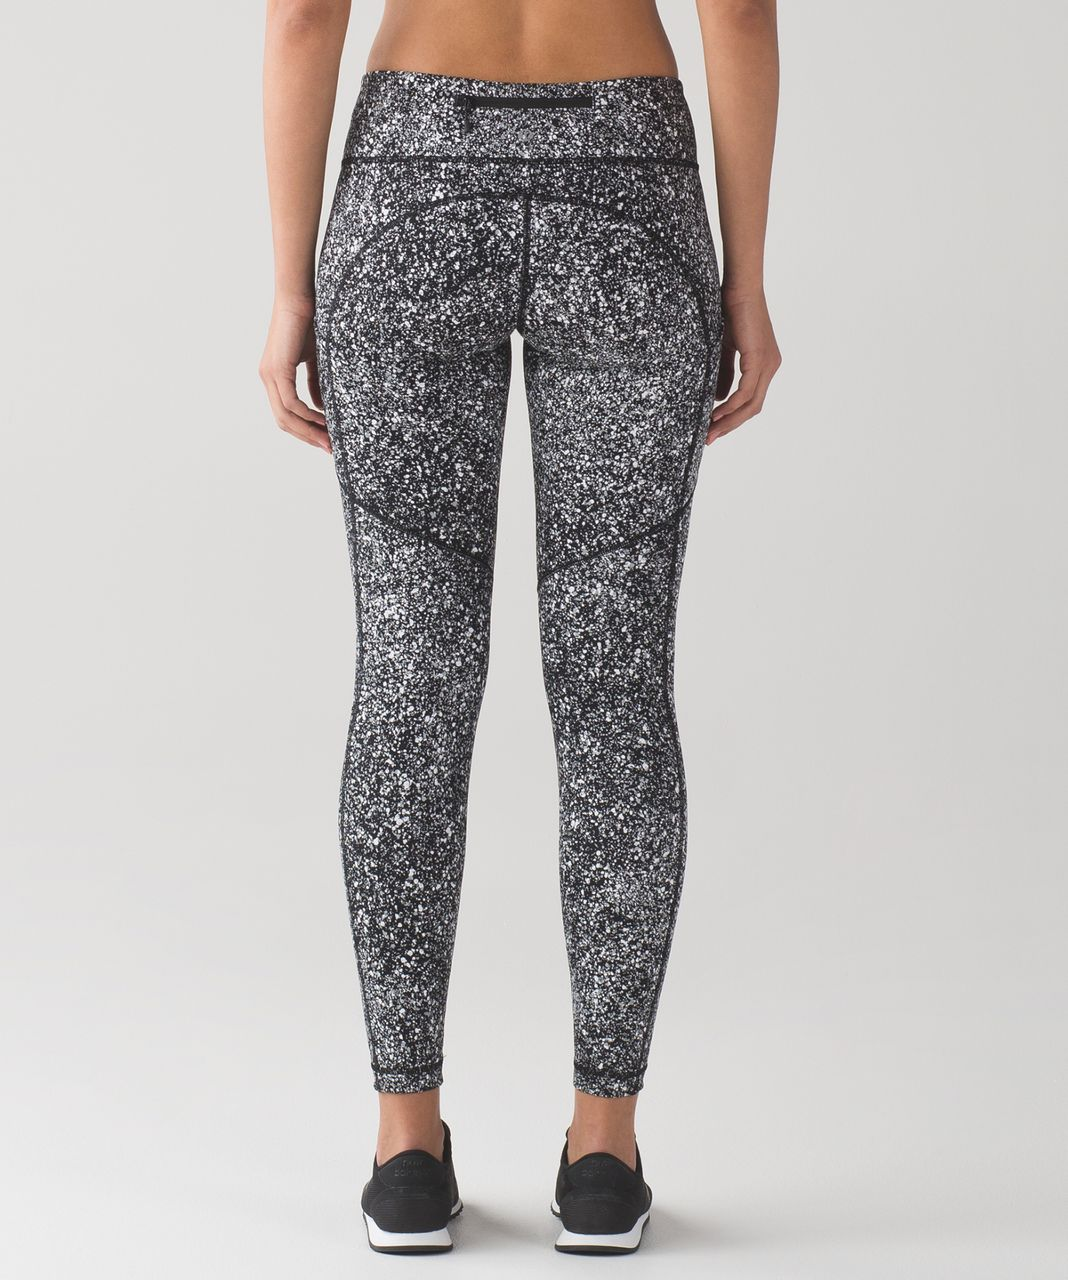 Lululemon Speed Tight (Splatter) (Reflective) - Splatter Reflective